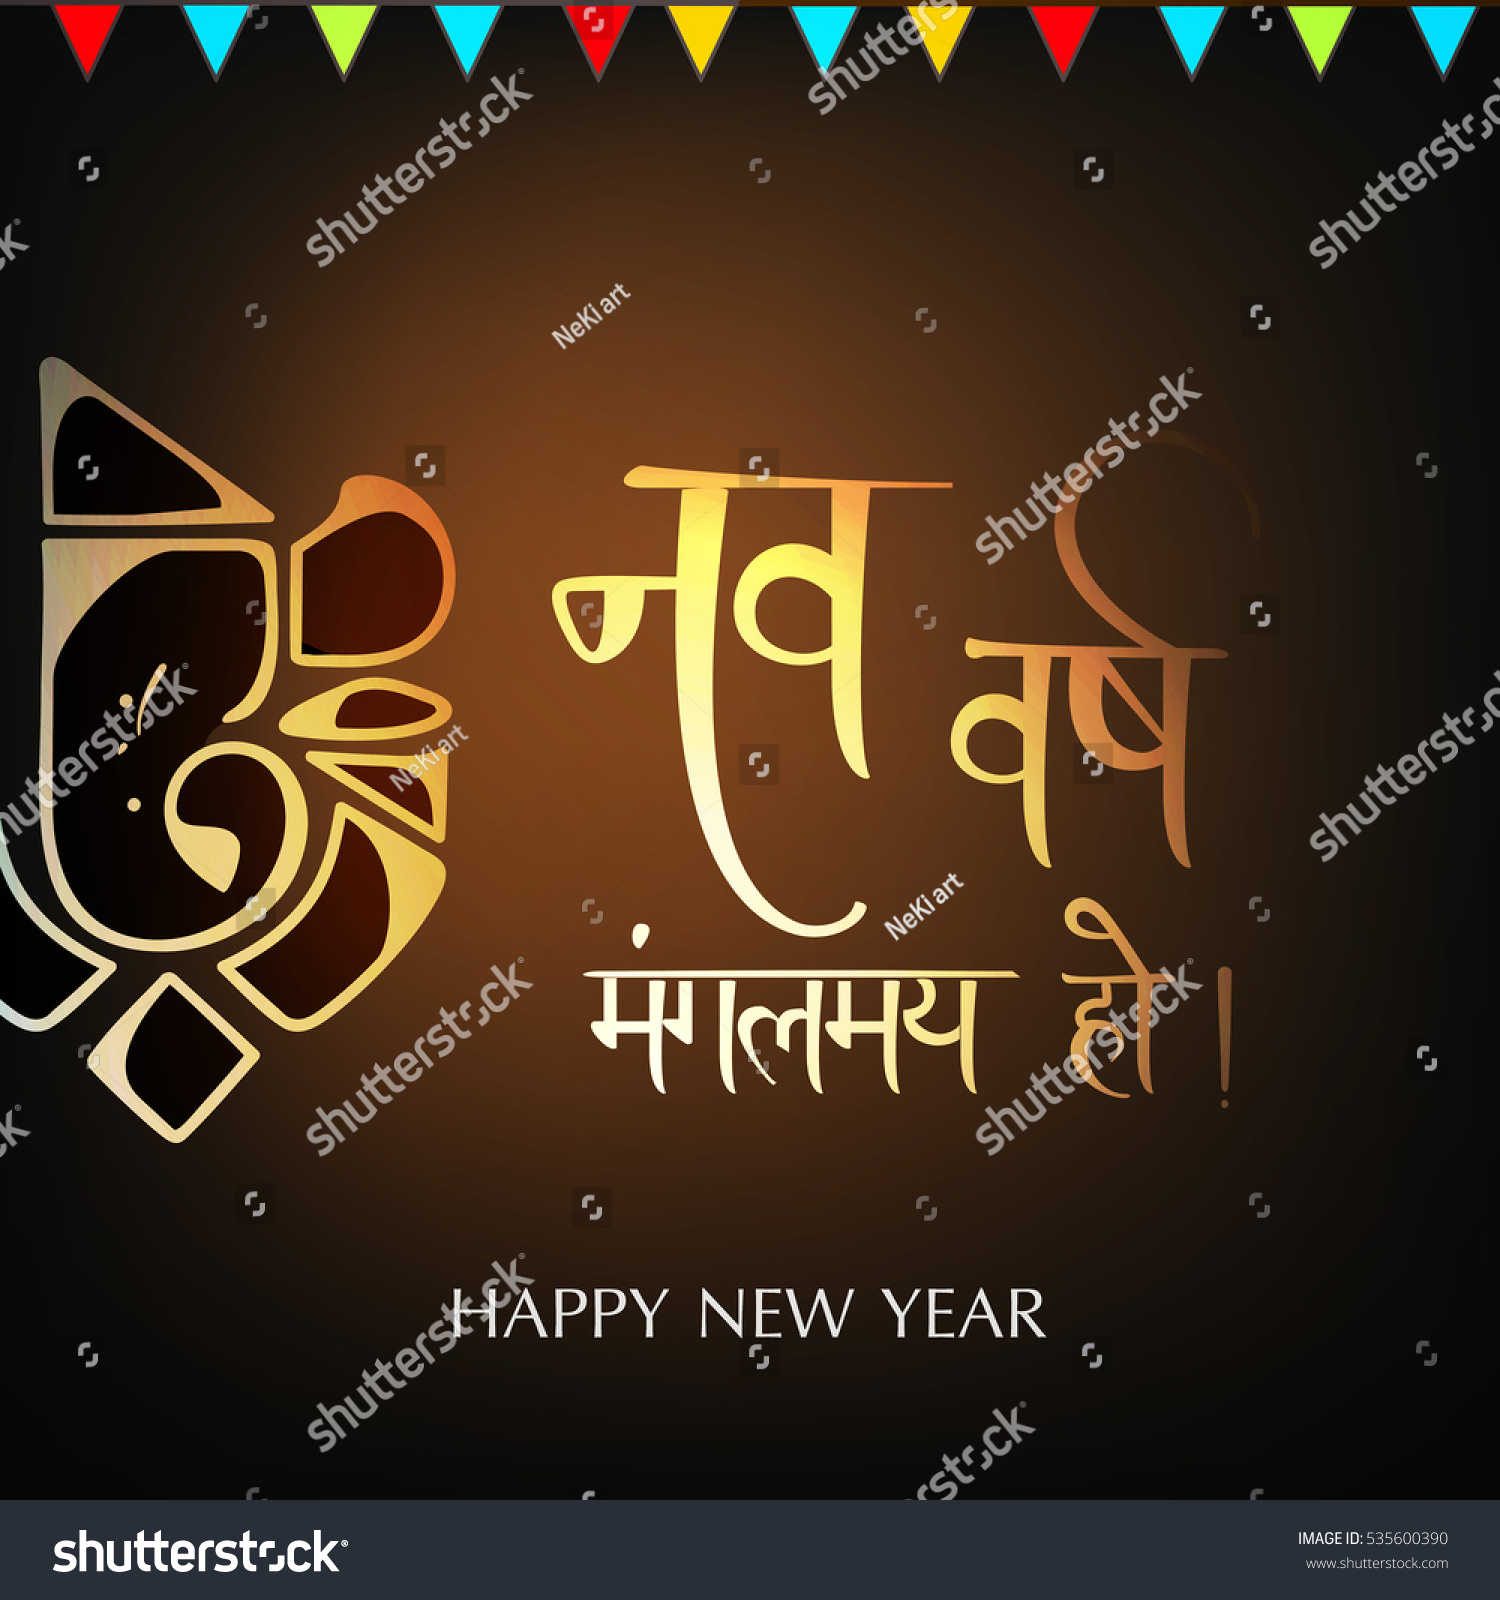 Happy New Year Religious Greetings Image Collections Greetings